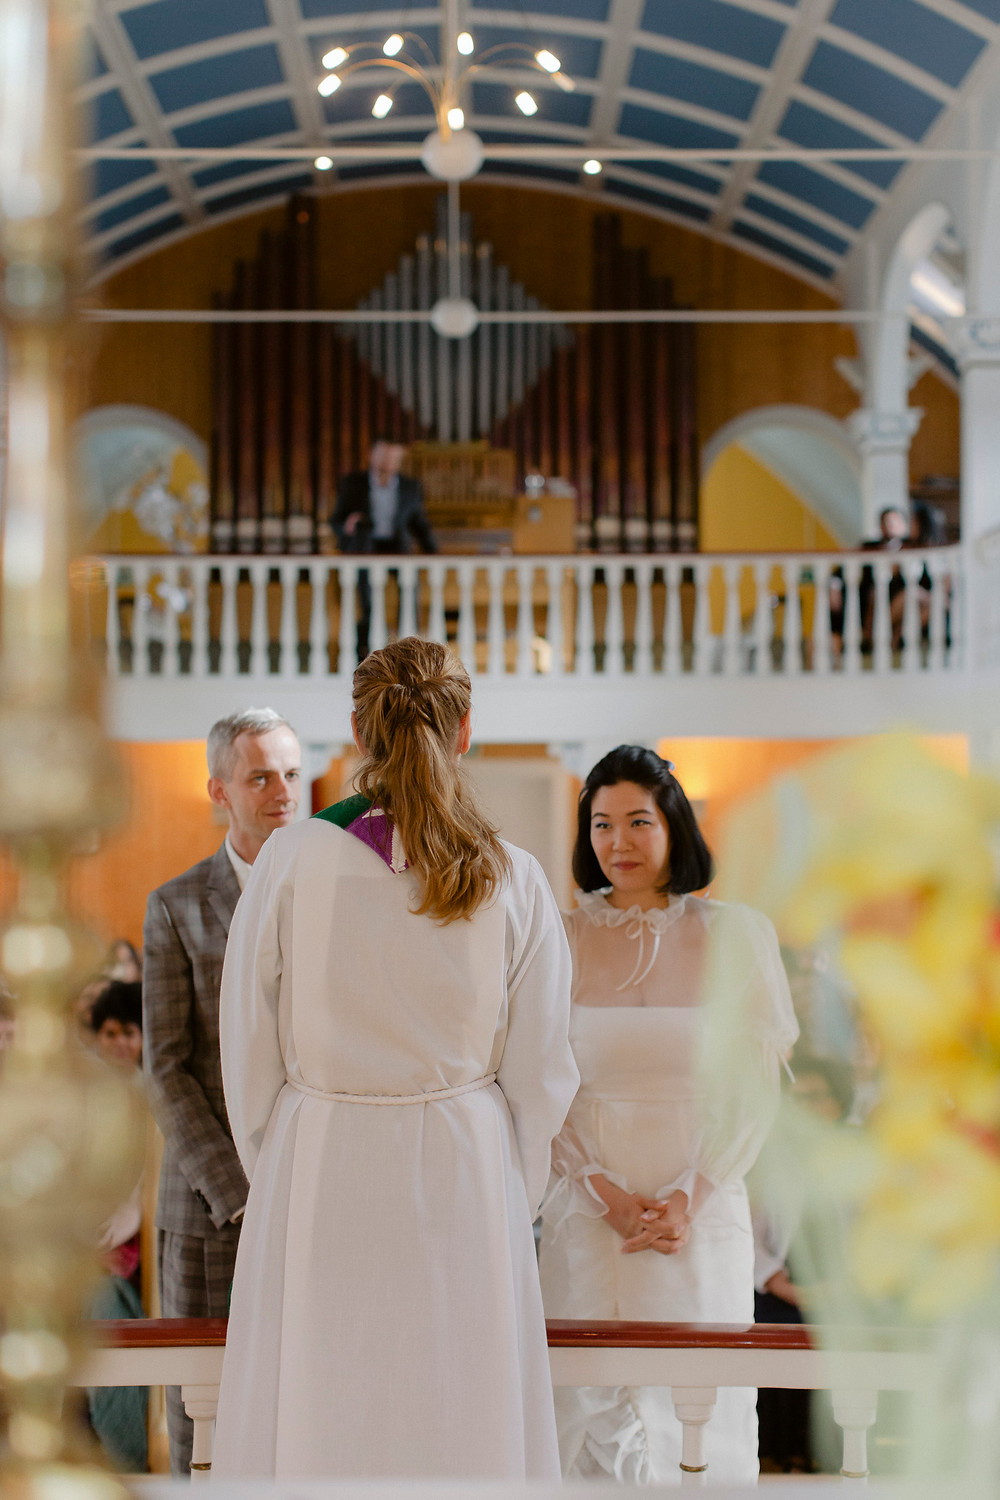 Iceland Wedding photo from the Blue Church in Seydisfjordur by Everbay Studio